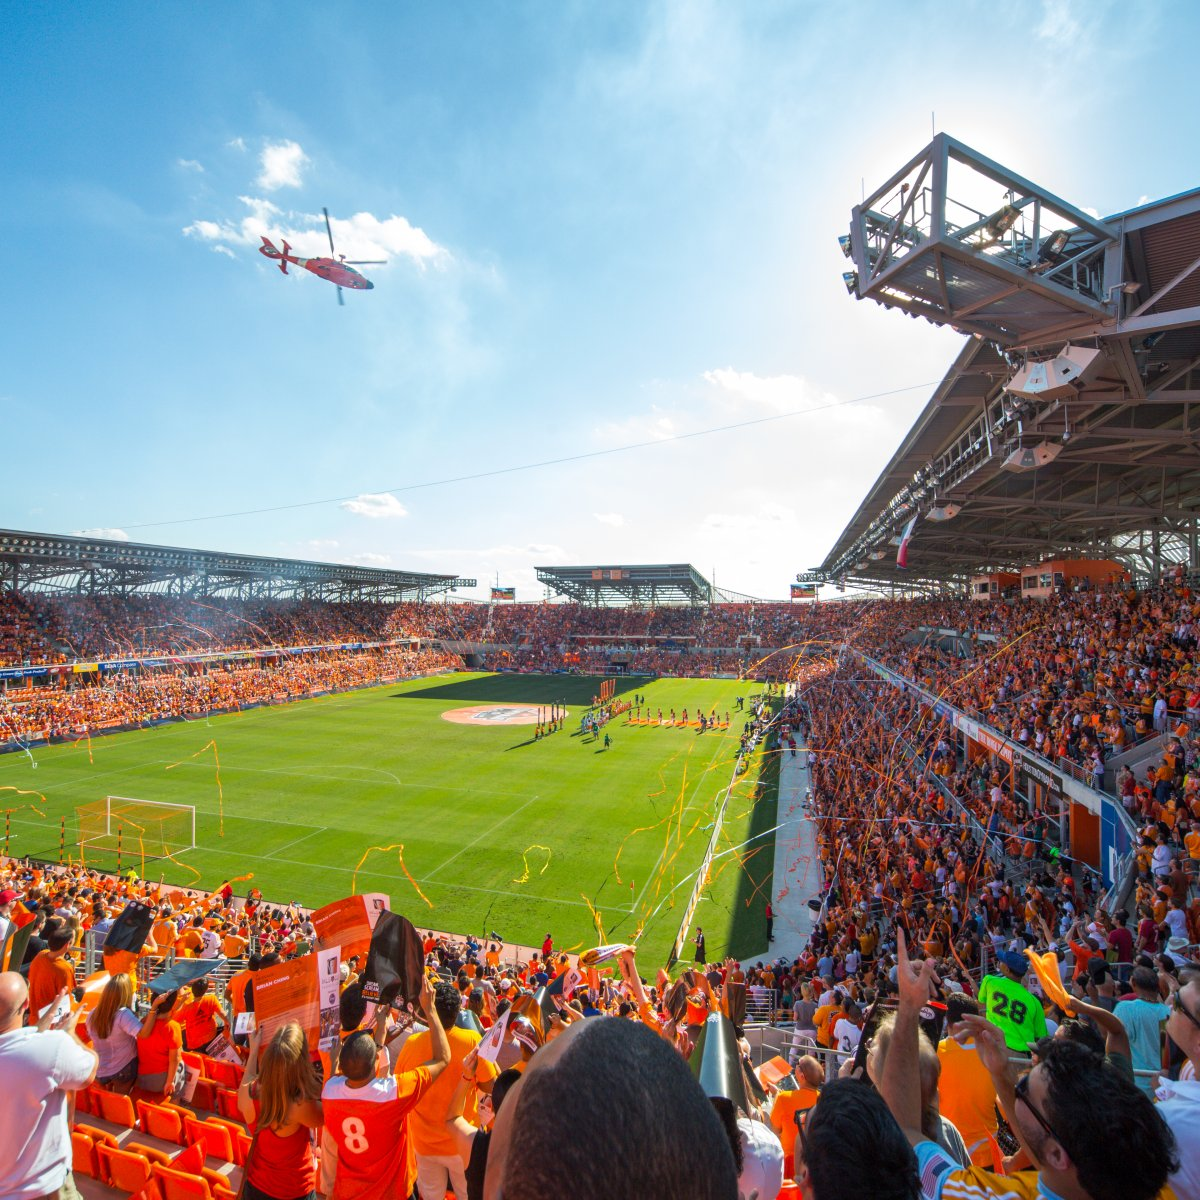 Interior image of BBVA Stadium during a soccer game with the crowd cheering